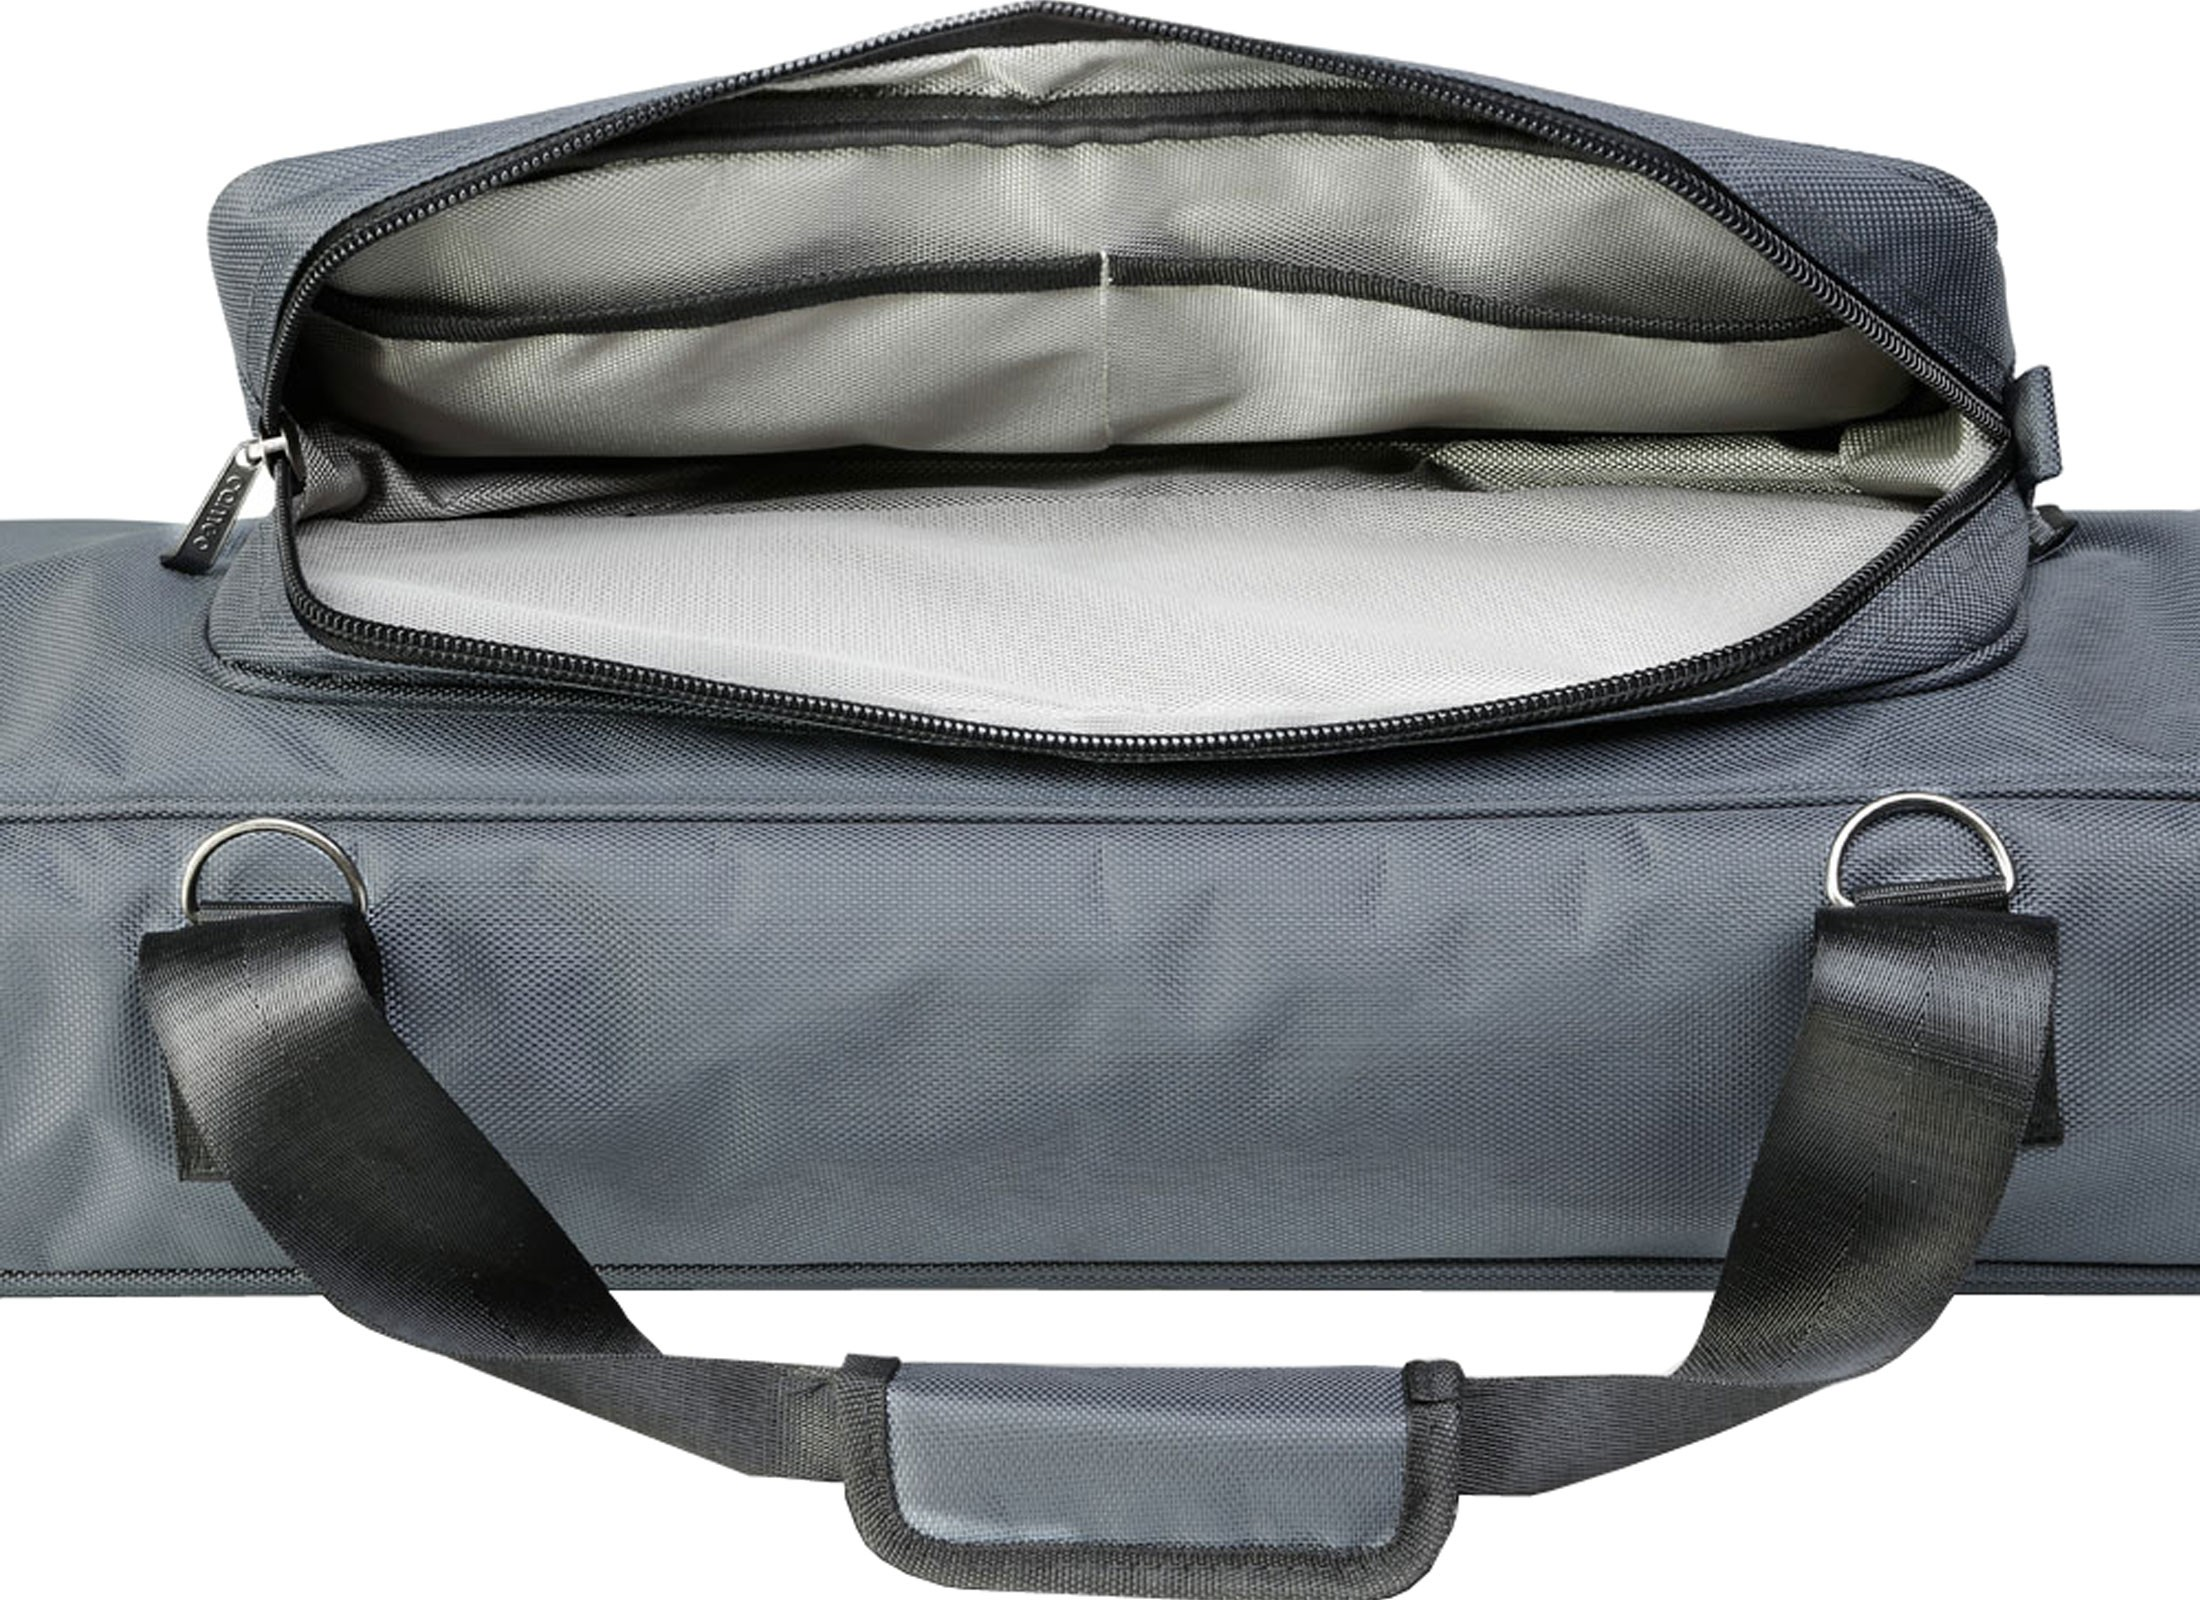 Cameo GearBag 400 S Softcase   Transport Bag Online At Low Prices At ... 57d69491a3c71